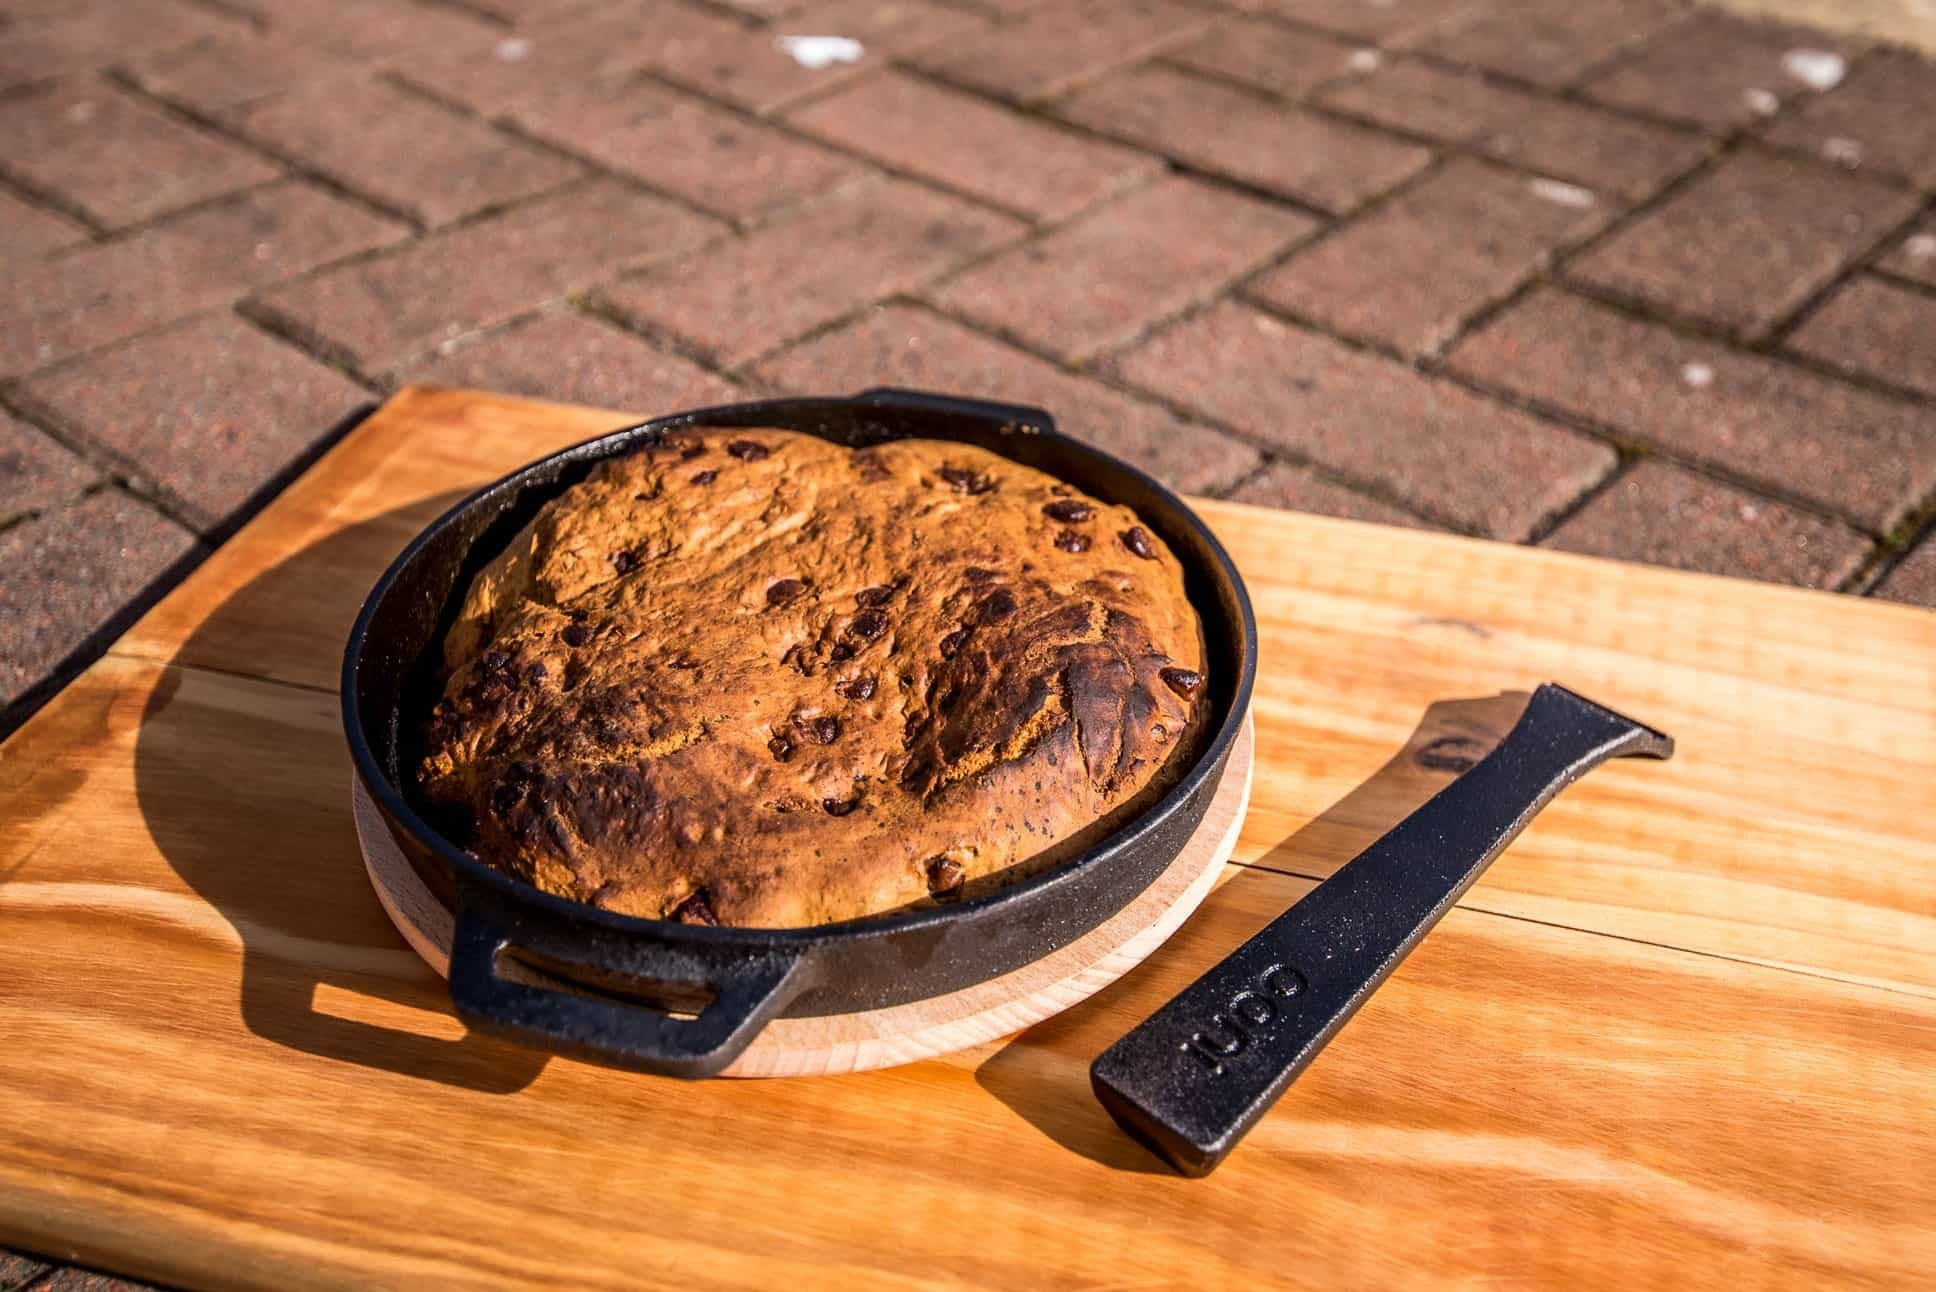 Baked Skillet Banana Bread Featured Image